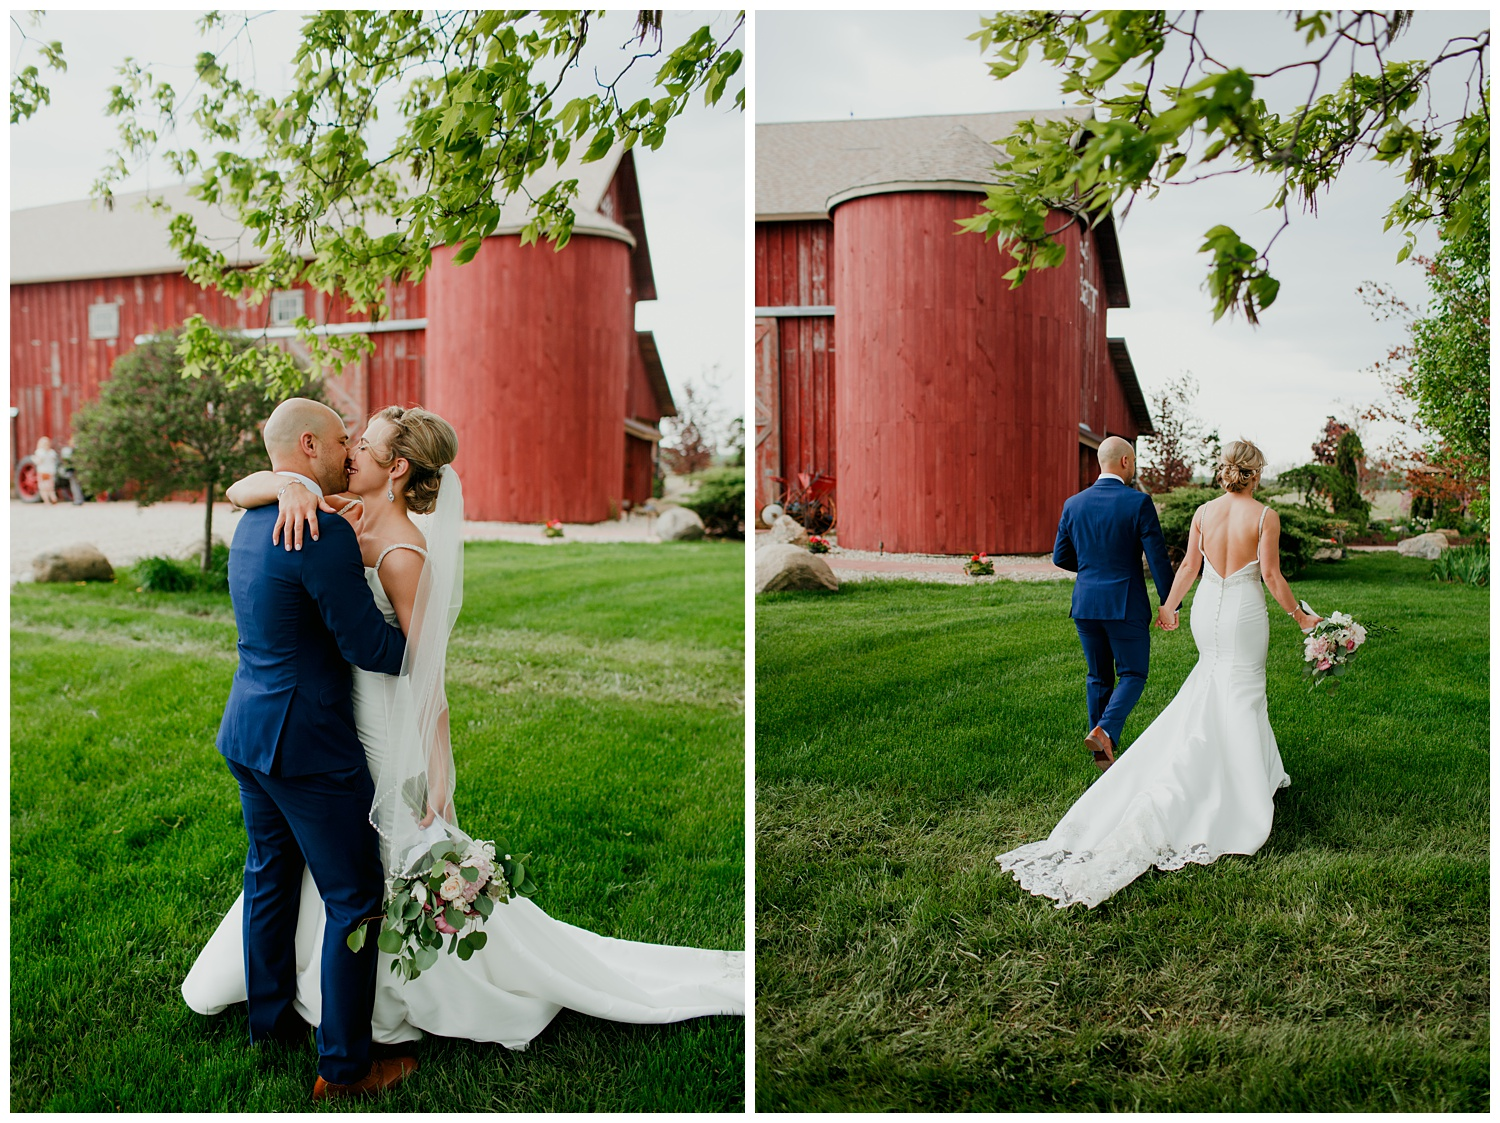 blissfulbarn threeoaks michigan wedding photography journeymandistillery90.jpg